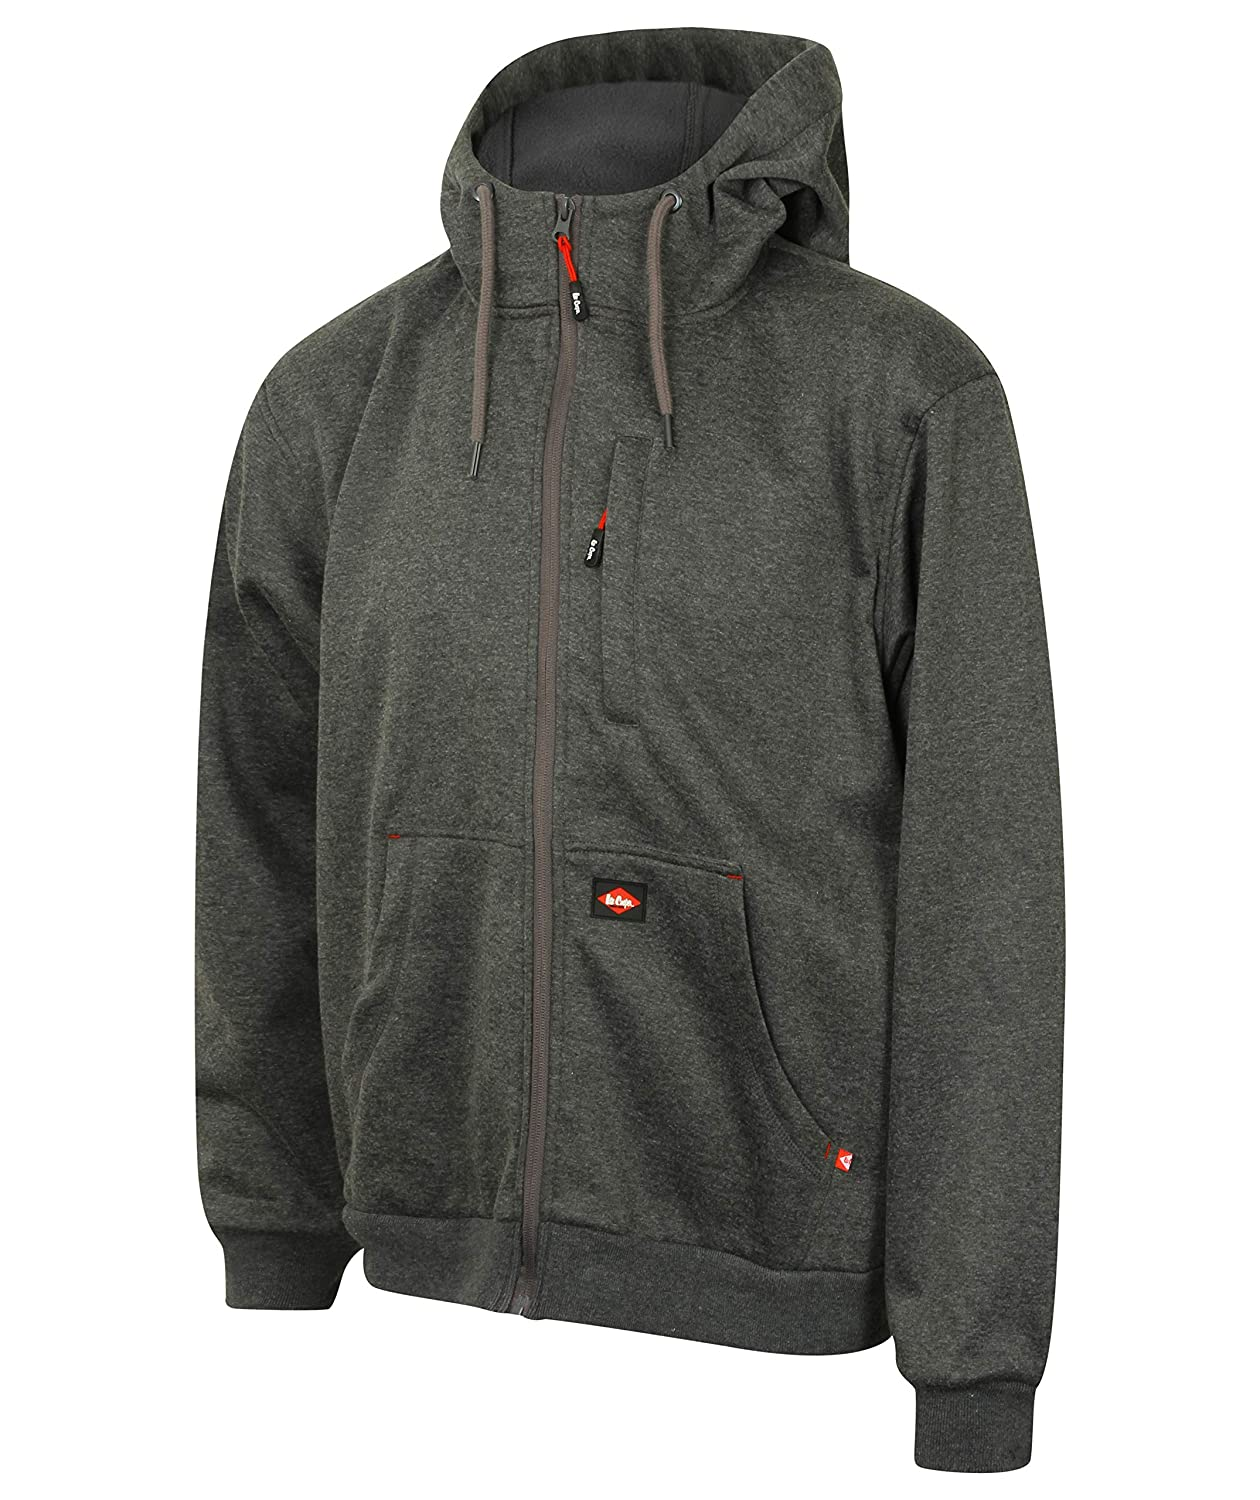 Lee Cooper Workwear lcswt123 _ GMarl 2 X L winddicht mit Kapuze Bonded Fleece Zip Up Hoodie, grau marl